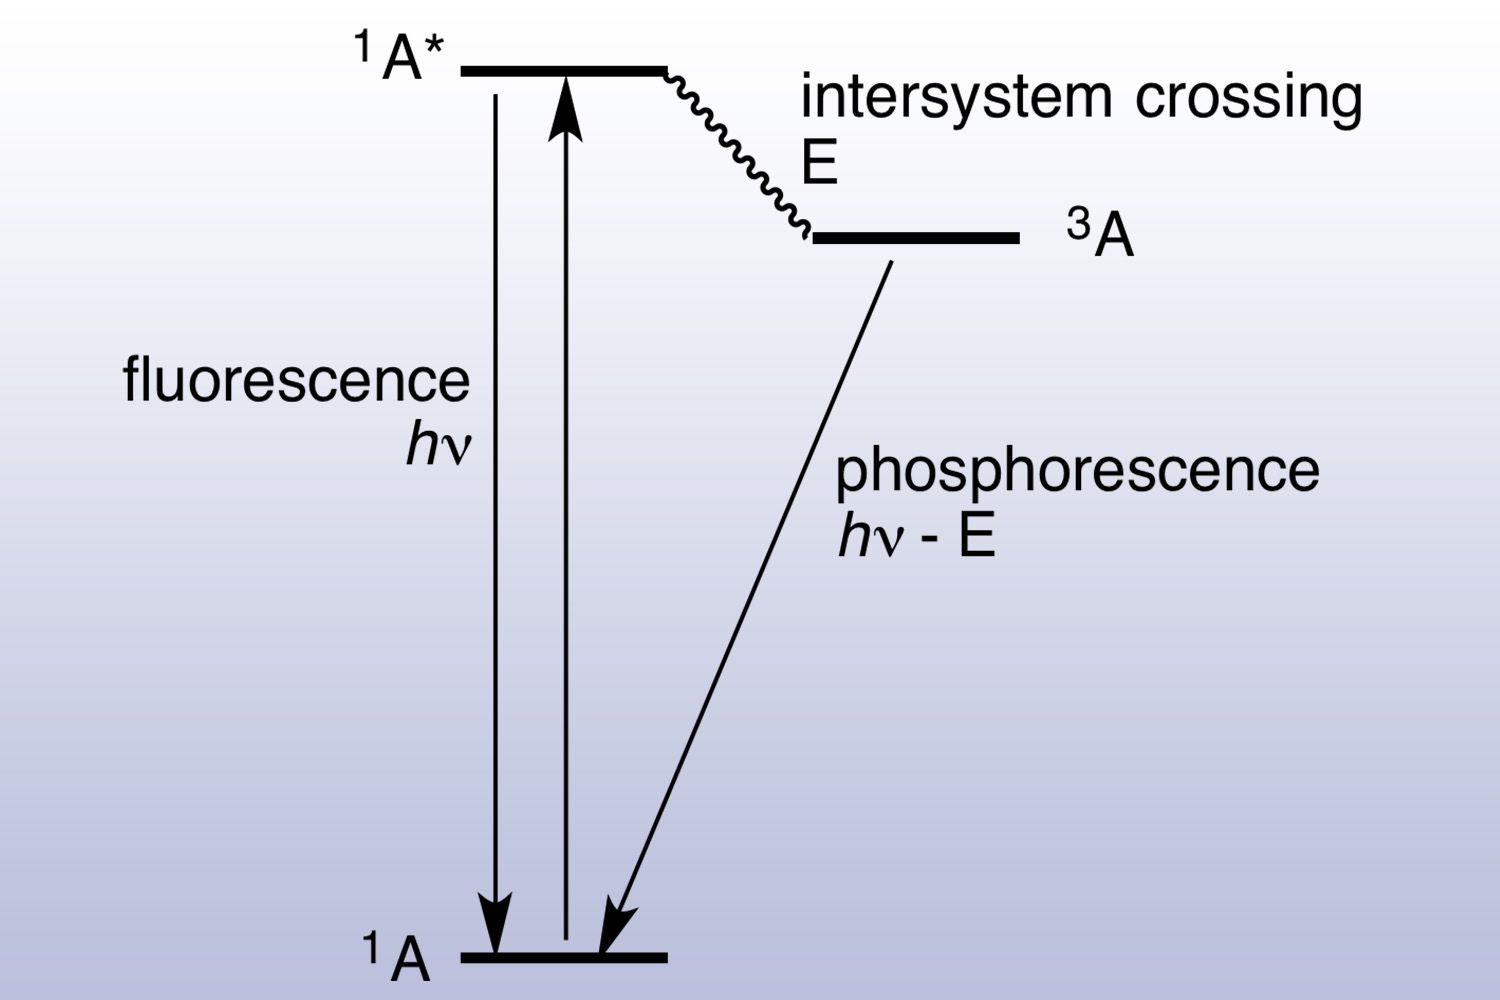 Jablonski diagram showing difference between fluorescence and phosphorescence